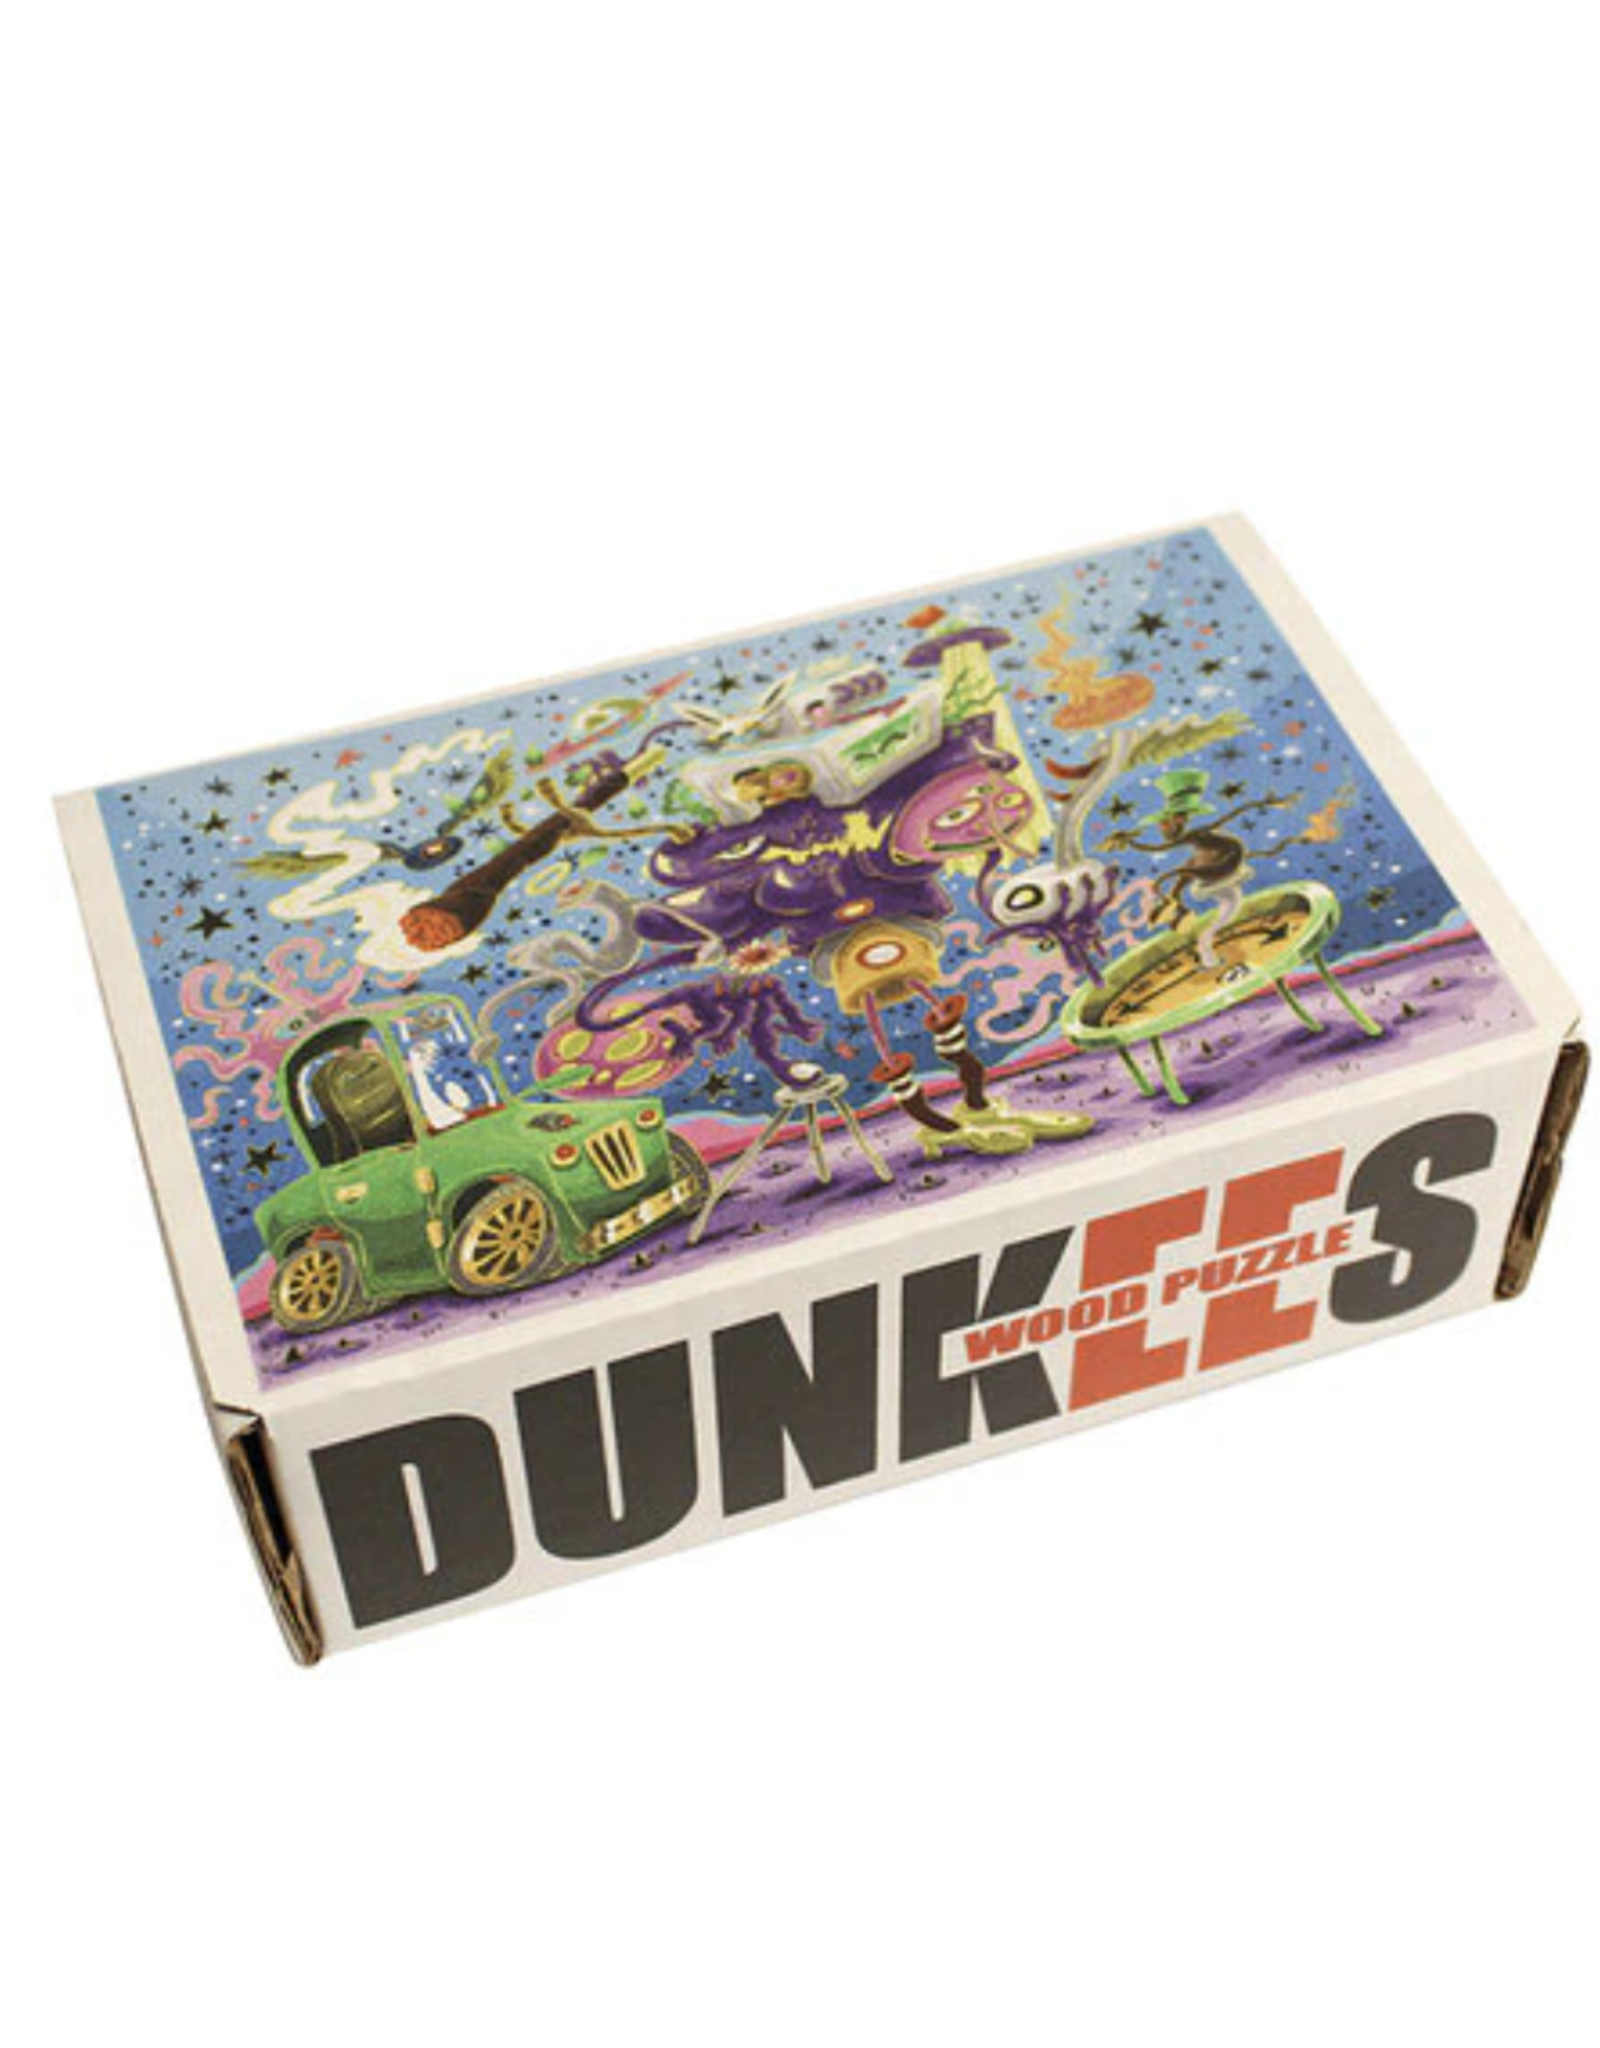 Fake People Dunkees Wooden Puzzle - 275 Piece